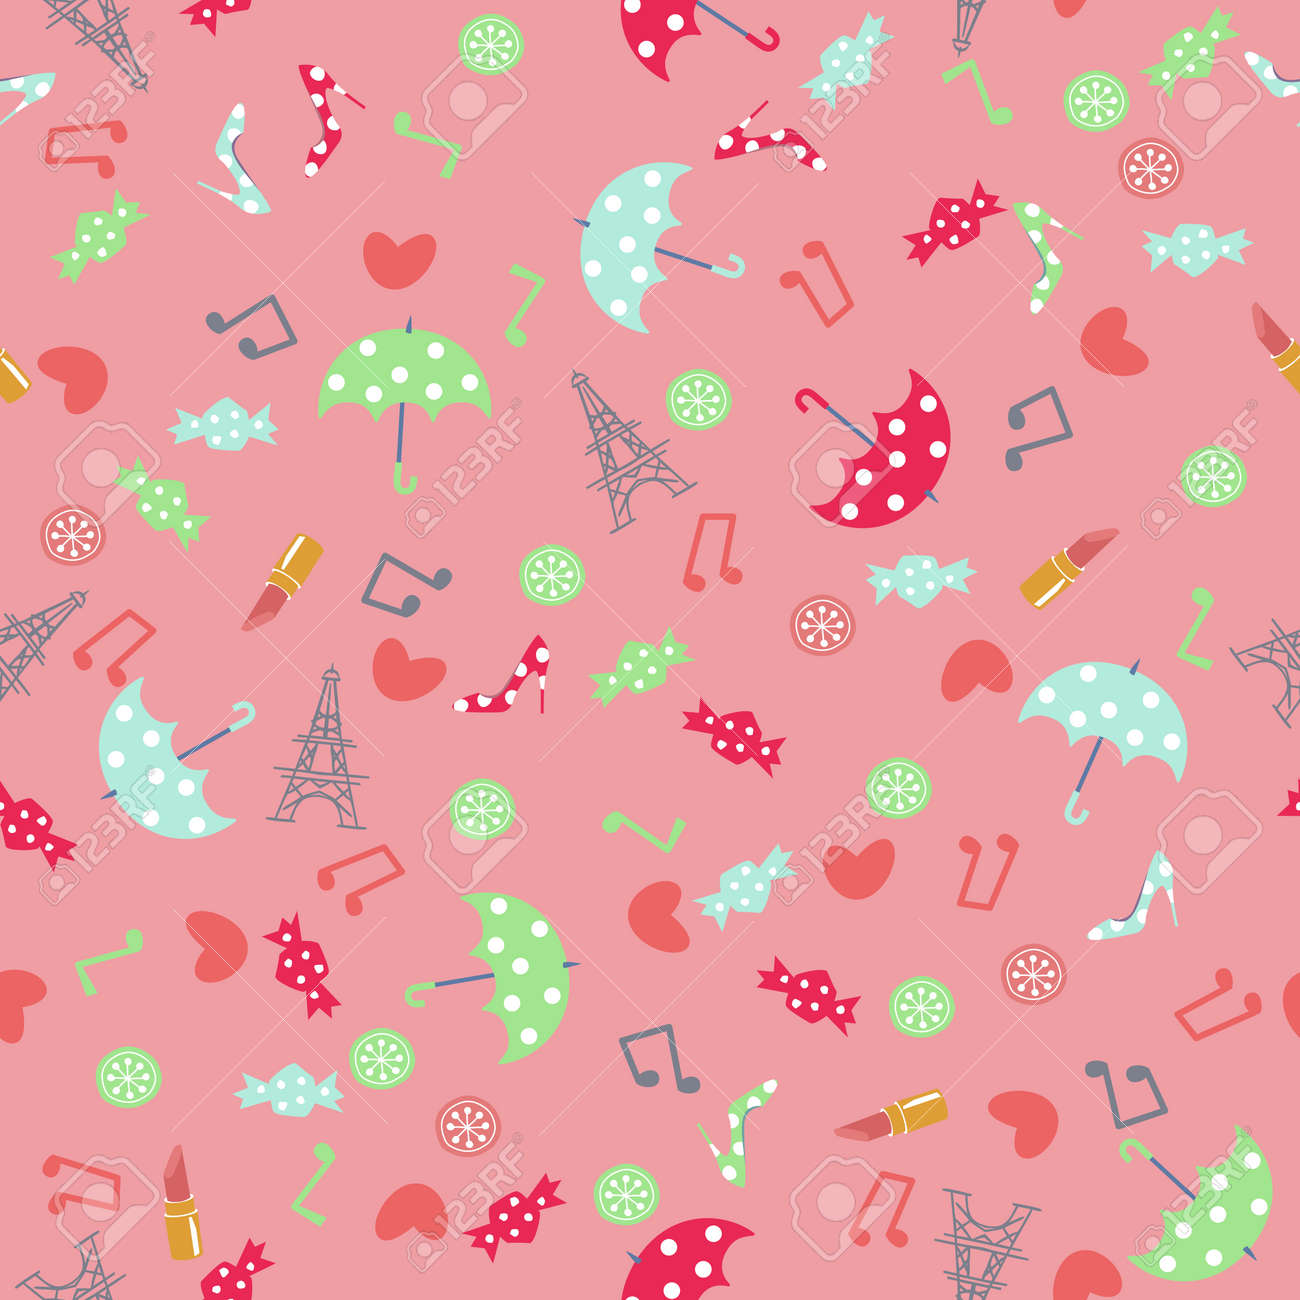 Paris accessory pattern. Seamless pattern. Material for wallpaper and wrapping paper. Textile design. - 169494557